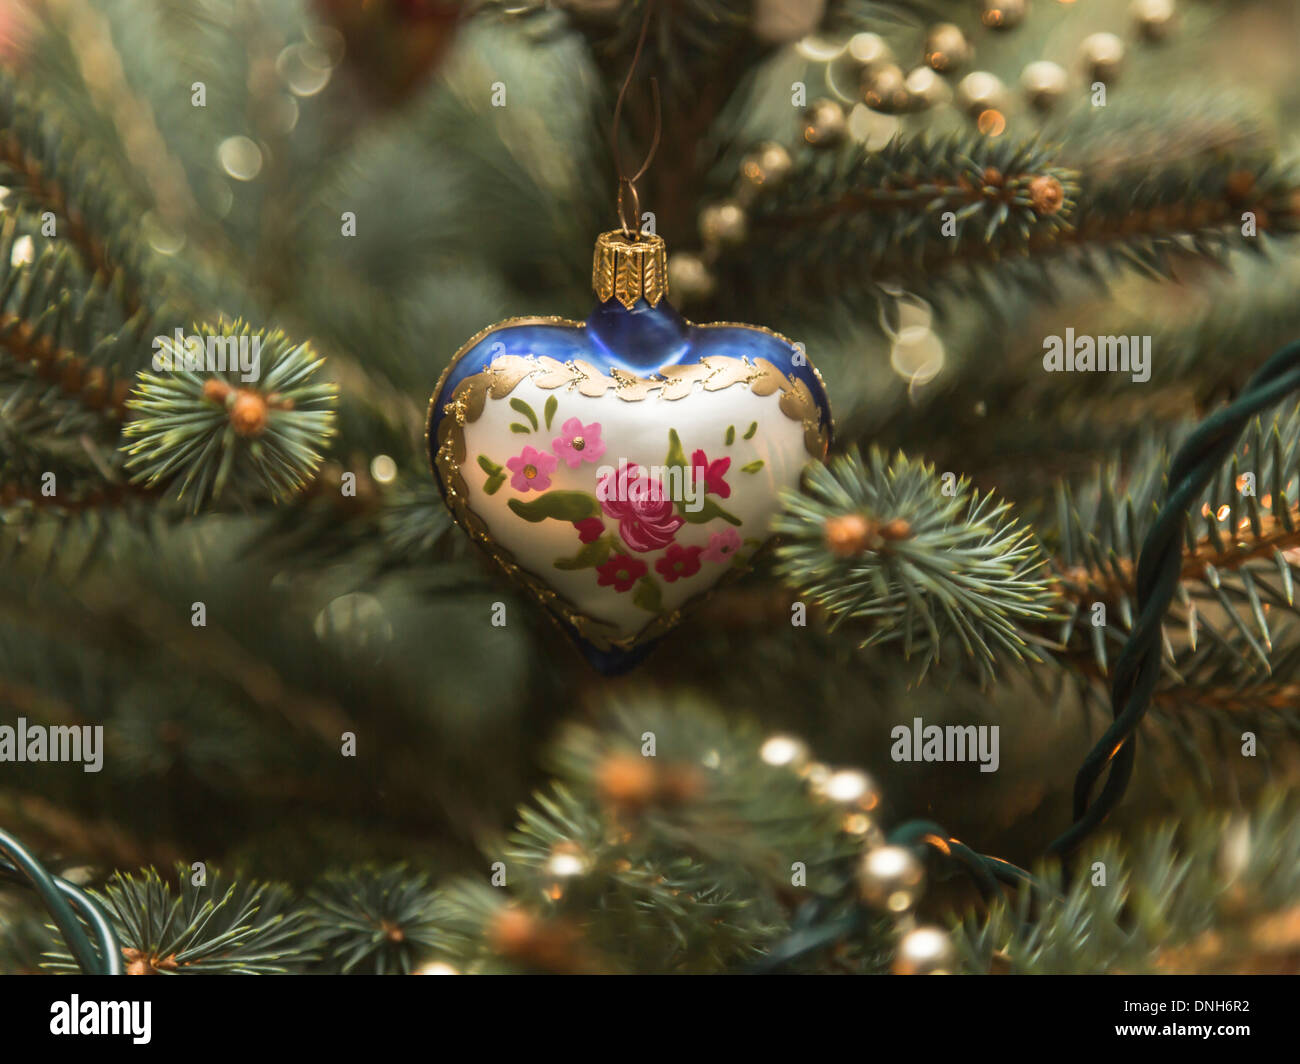 Blue and gold christmas tree decorations - Attractive Blue Gold And White Heart Shaped Christmas Tree Decoration With Pink And Red Roses